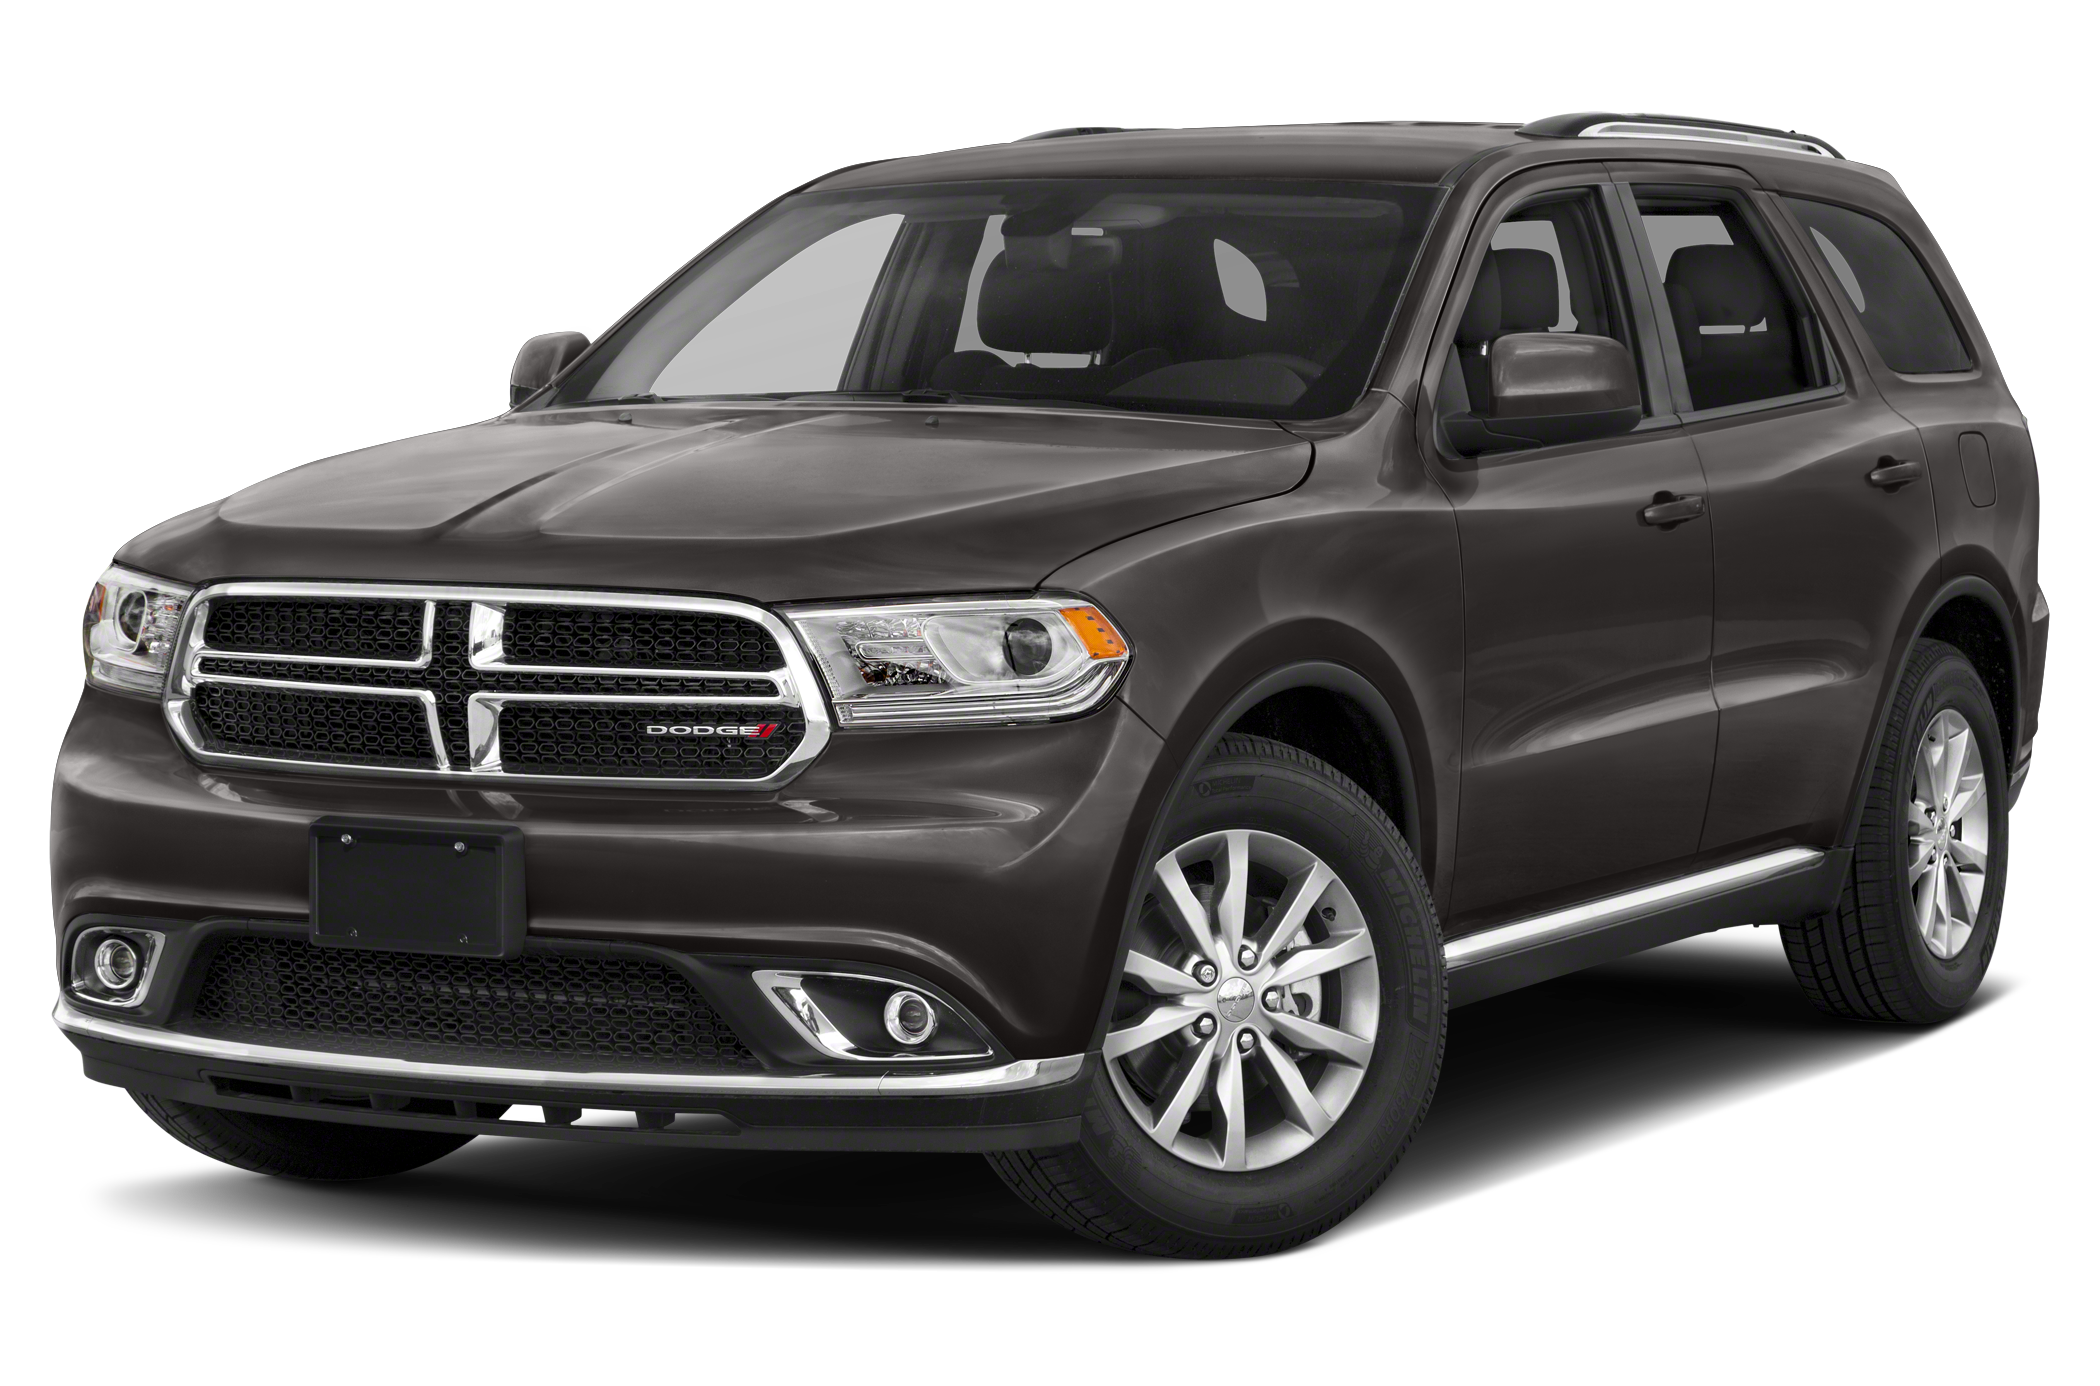 Compare Dodge/Durango to Ford/Explorer